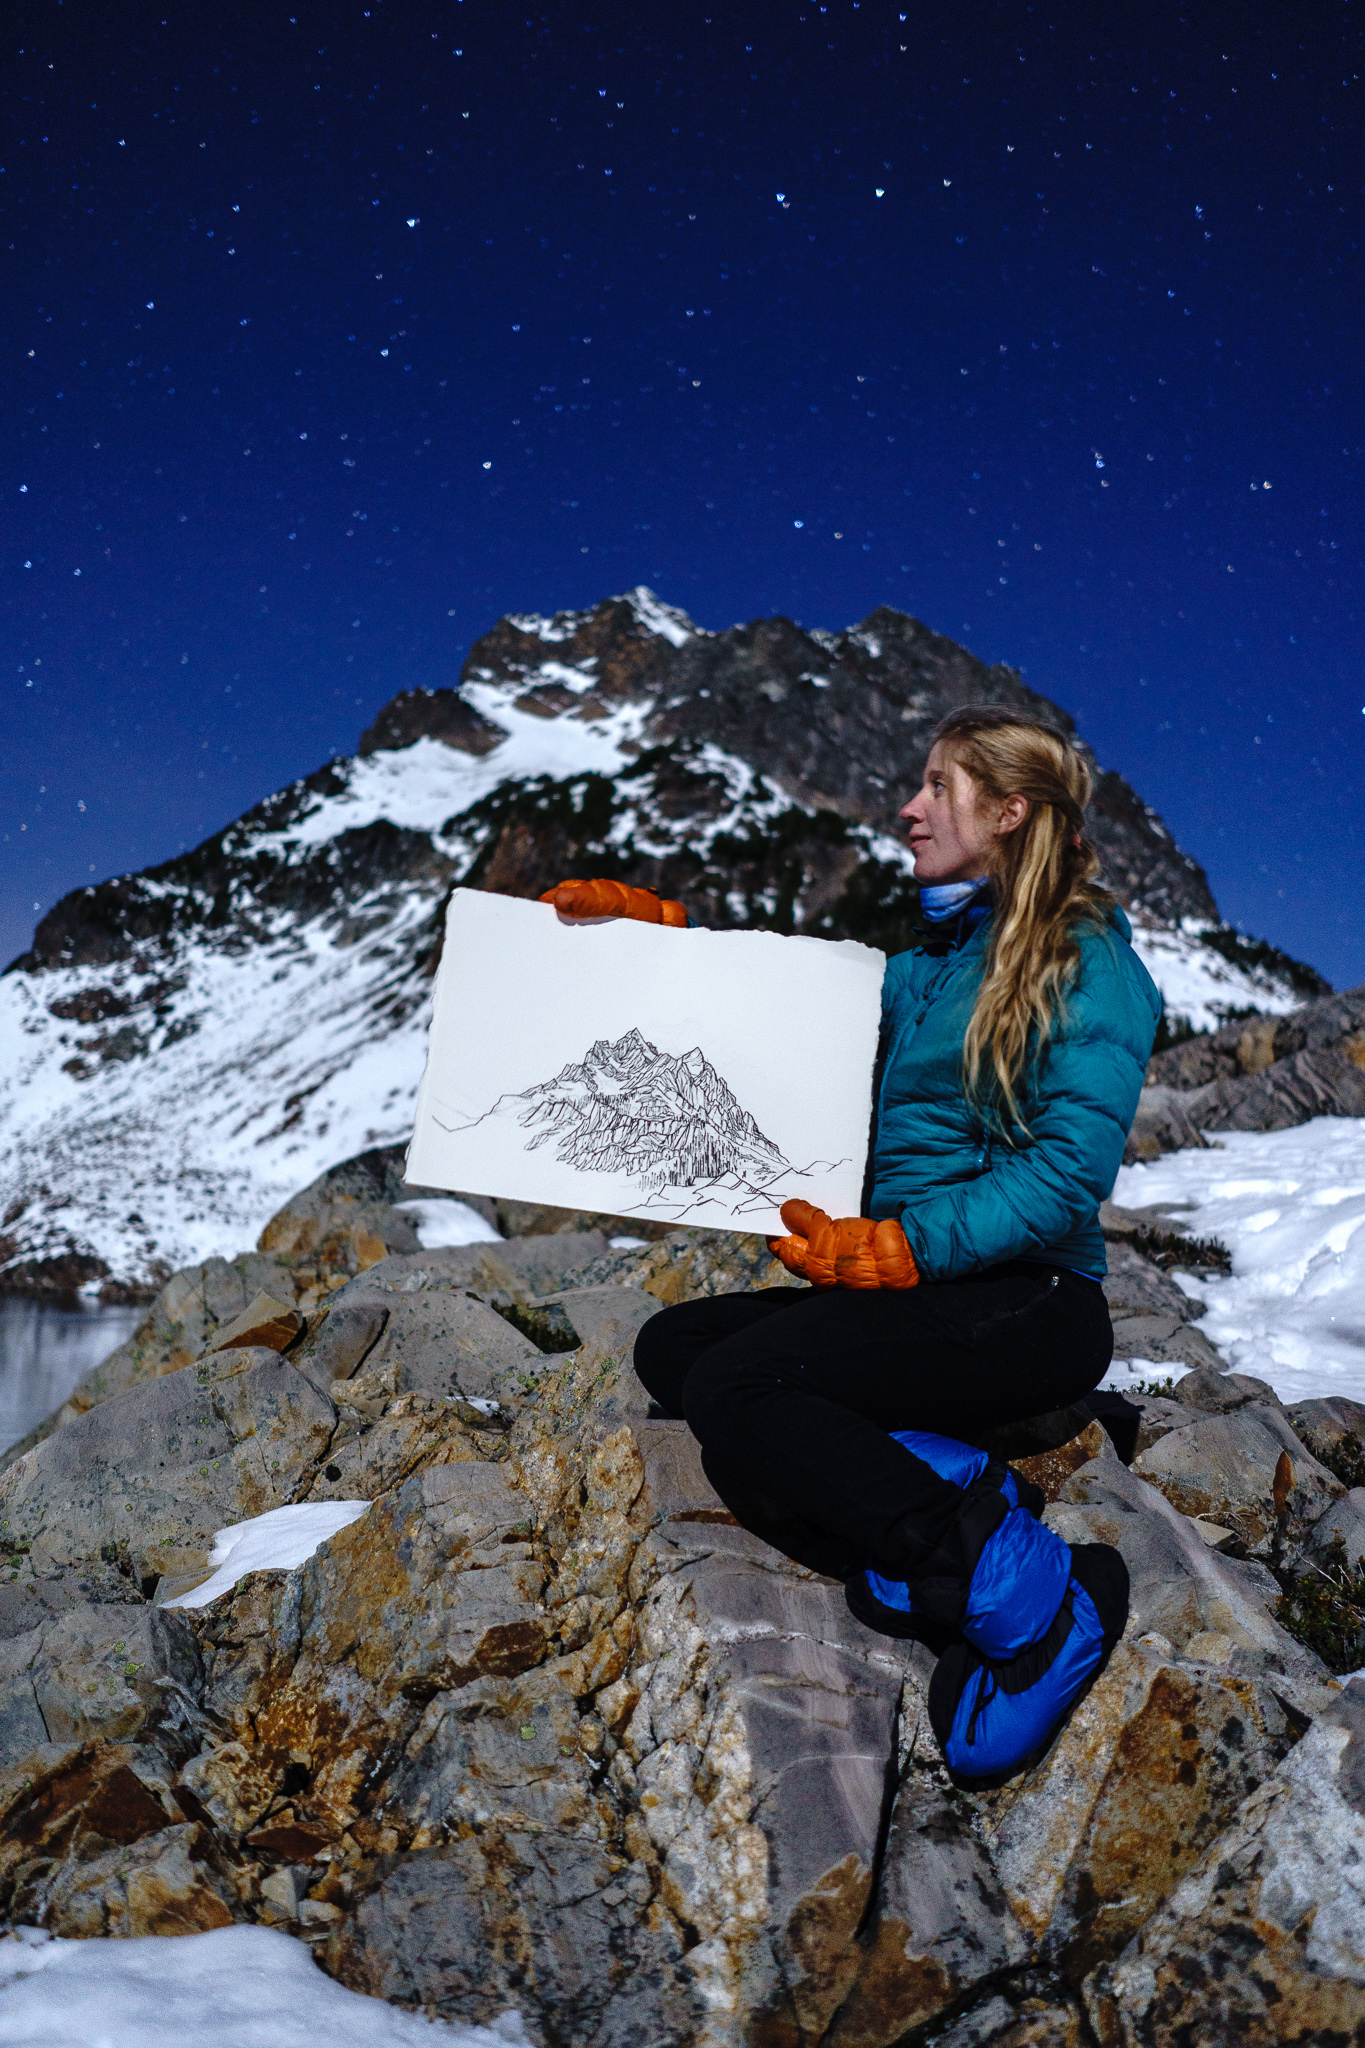 Drawn to High Places + her drawing of Del Campo